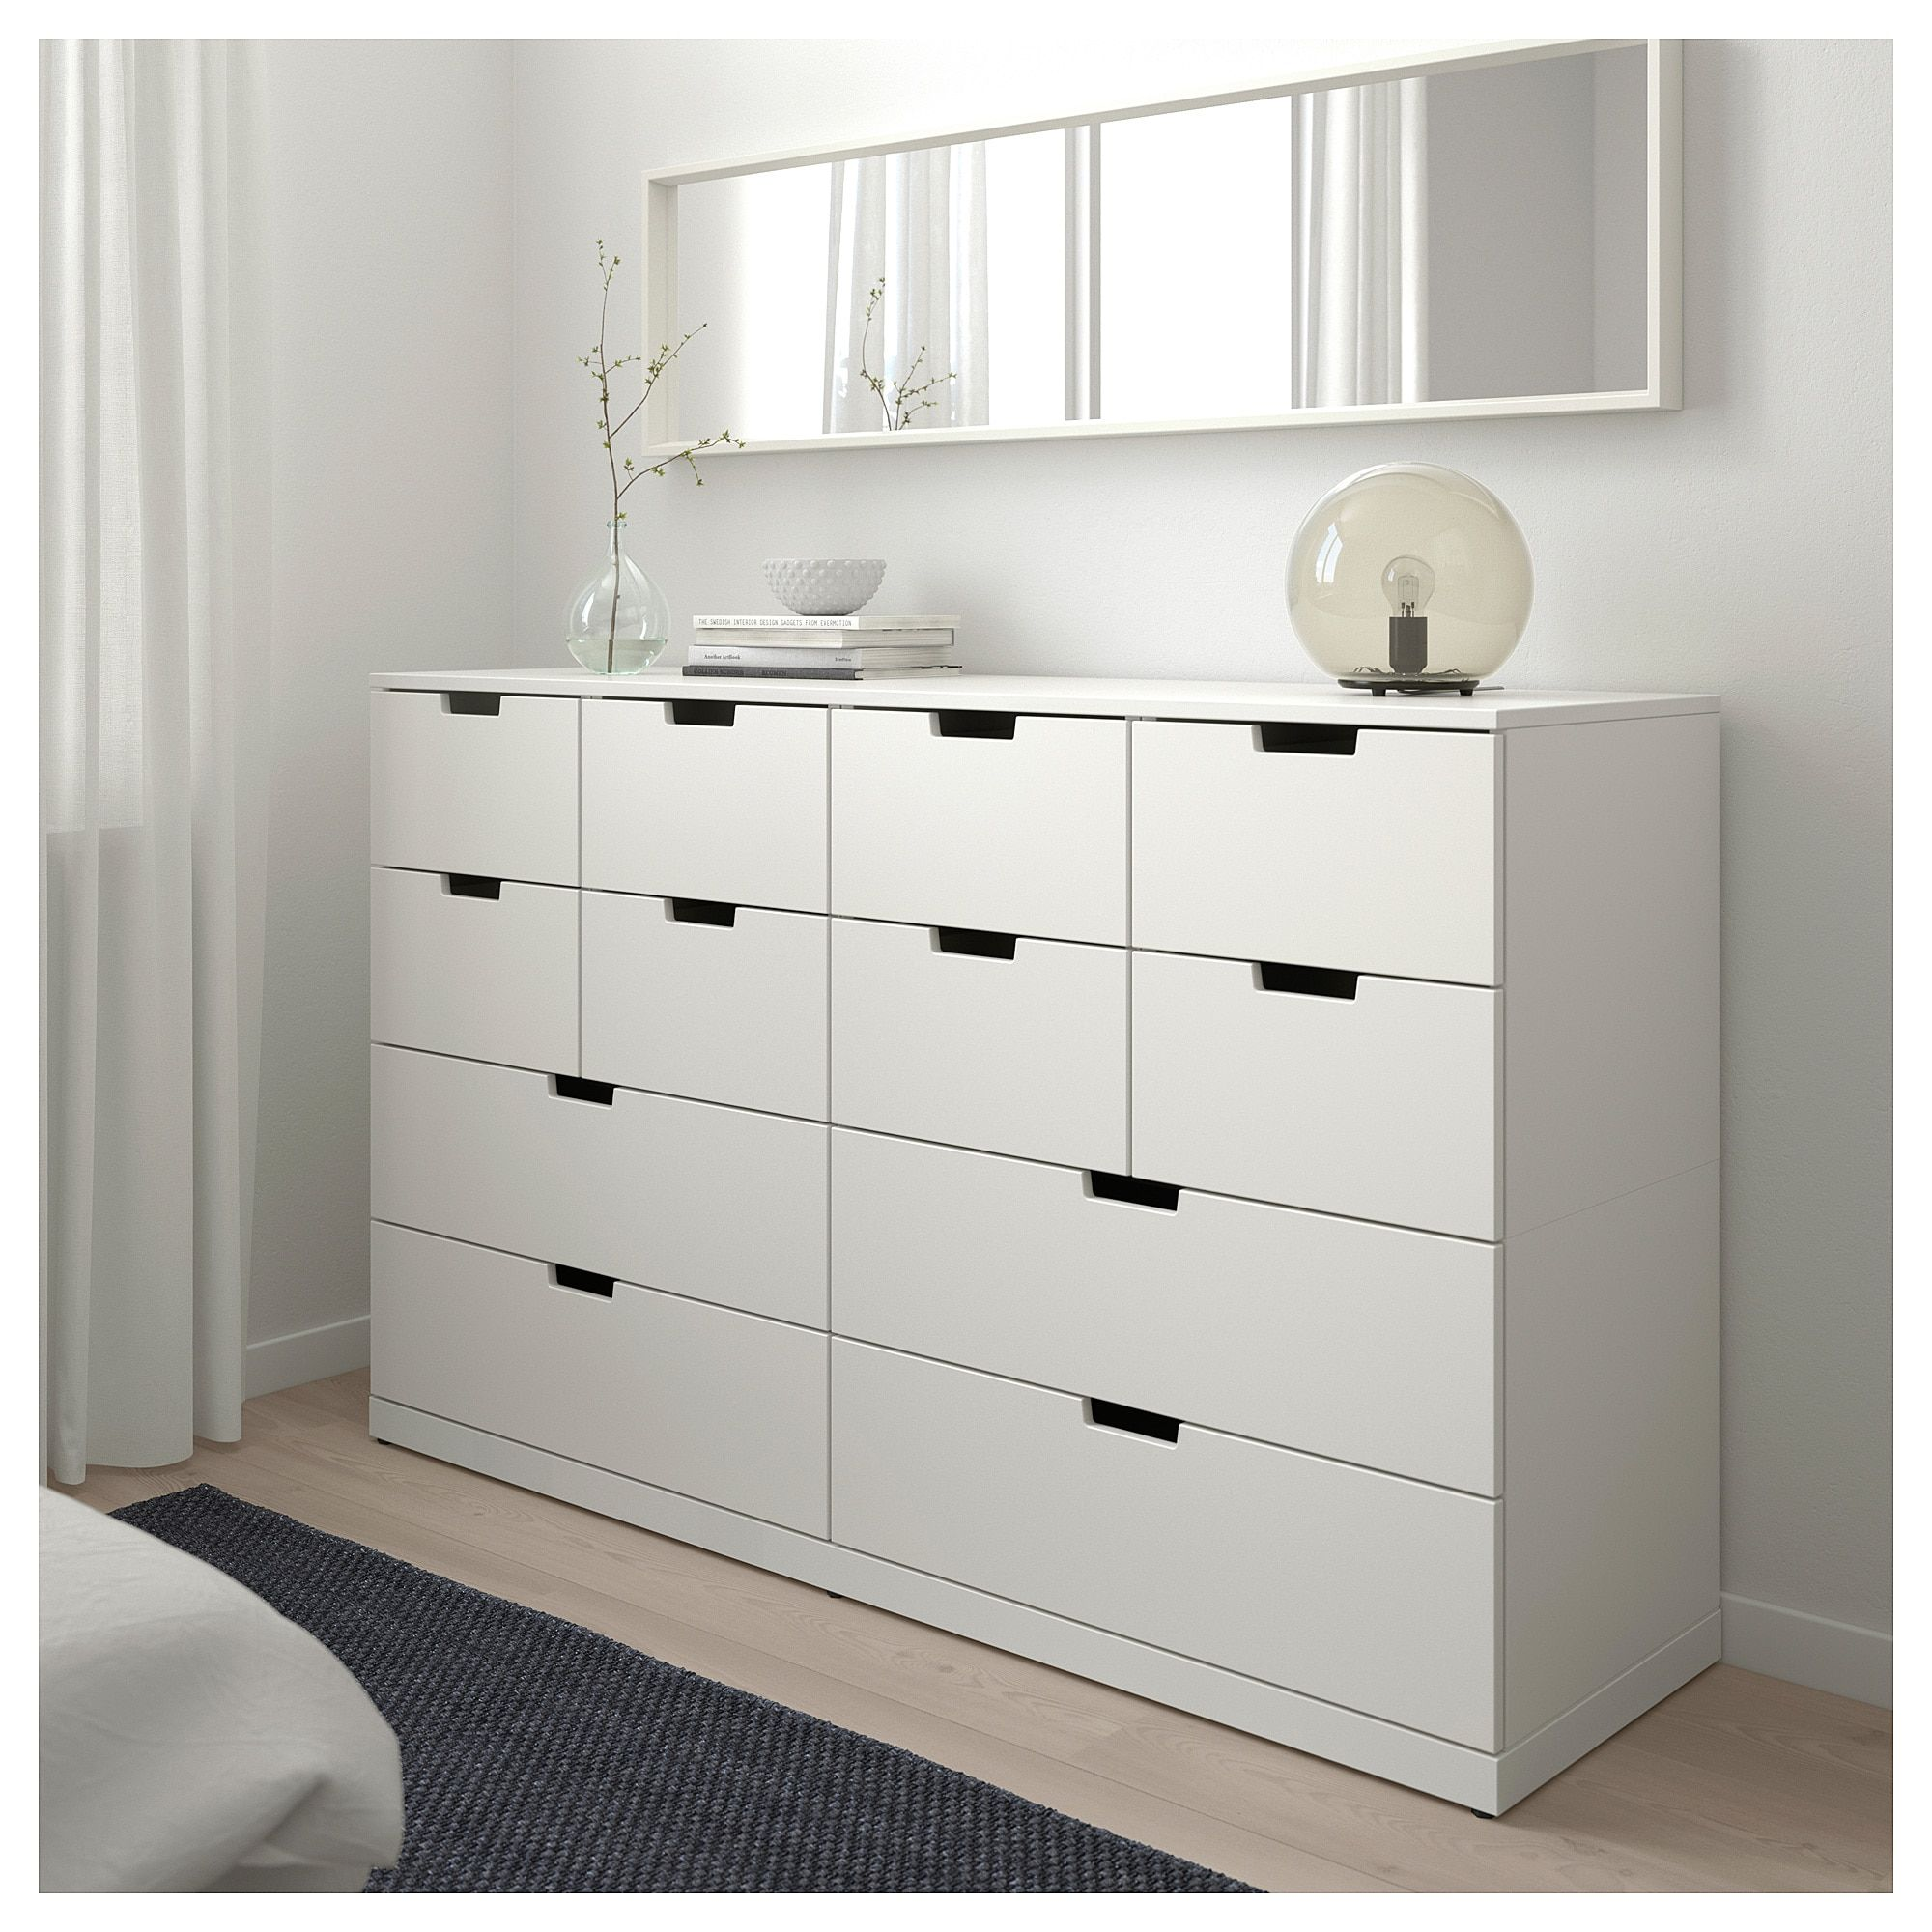 12 Drawer Chest Of Drawers Nordli 12 Drawer Chest White Design Nurseries White Chests